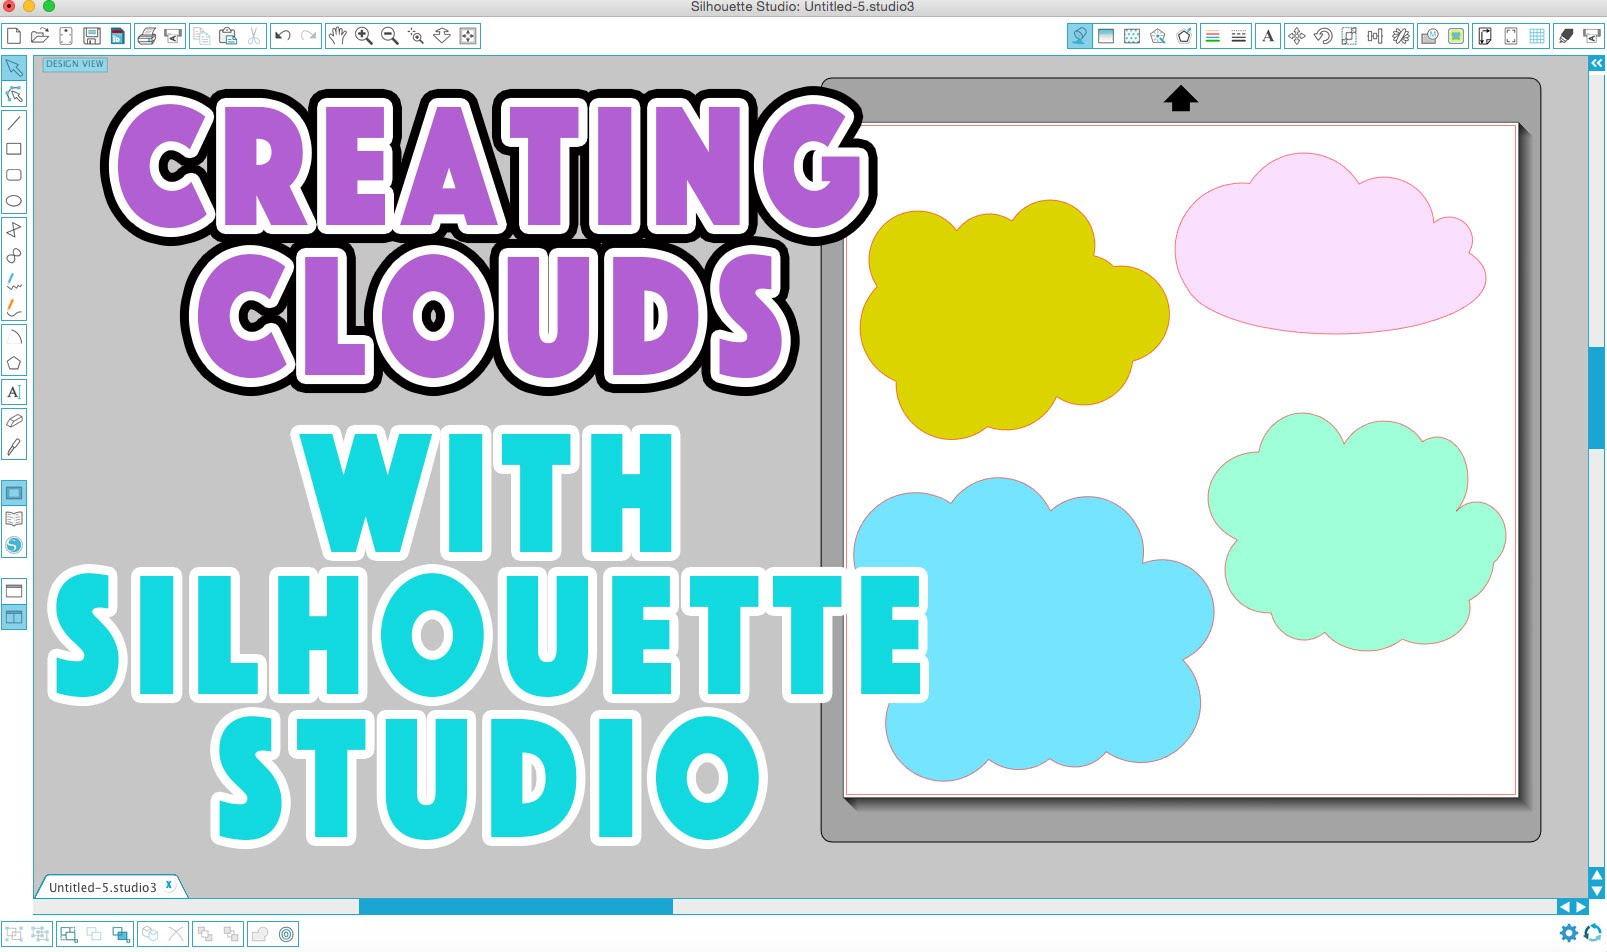 Silhouette Studio Tutorial: Creating Cloud Shapes